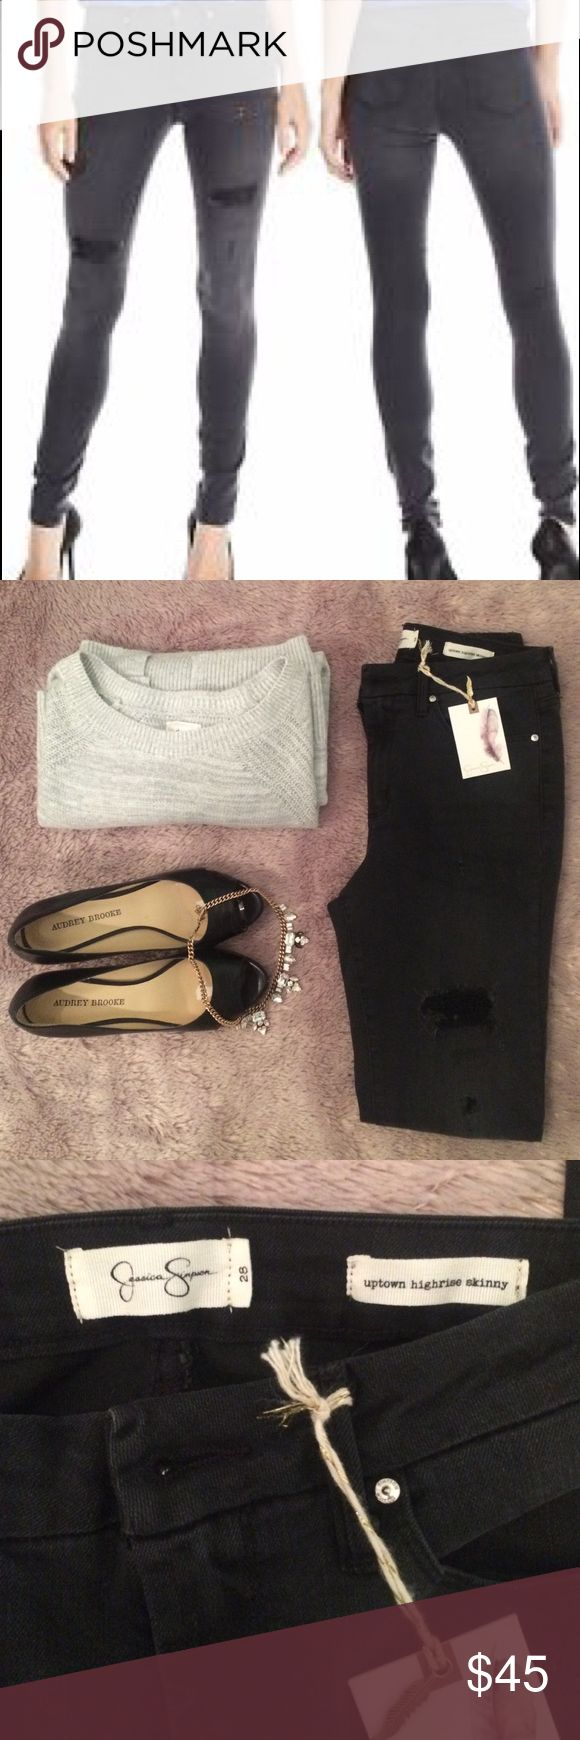 Jessica Simpson Uptown Highrise Skinny Gorgeous dark gray, slightly distressed Jessica Simpson jeans that can easily be dressed up or down. These are brand new and a fun staple to add to any closet! Jessica Simpson Jeans Skinny